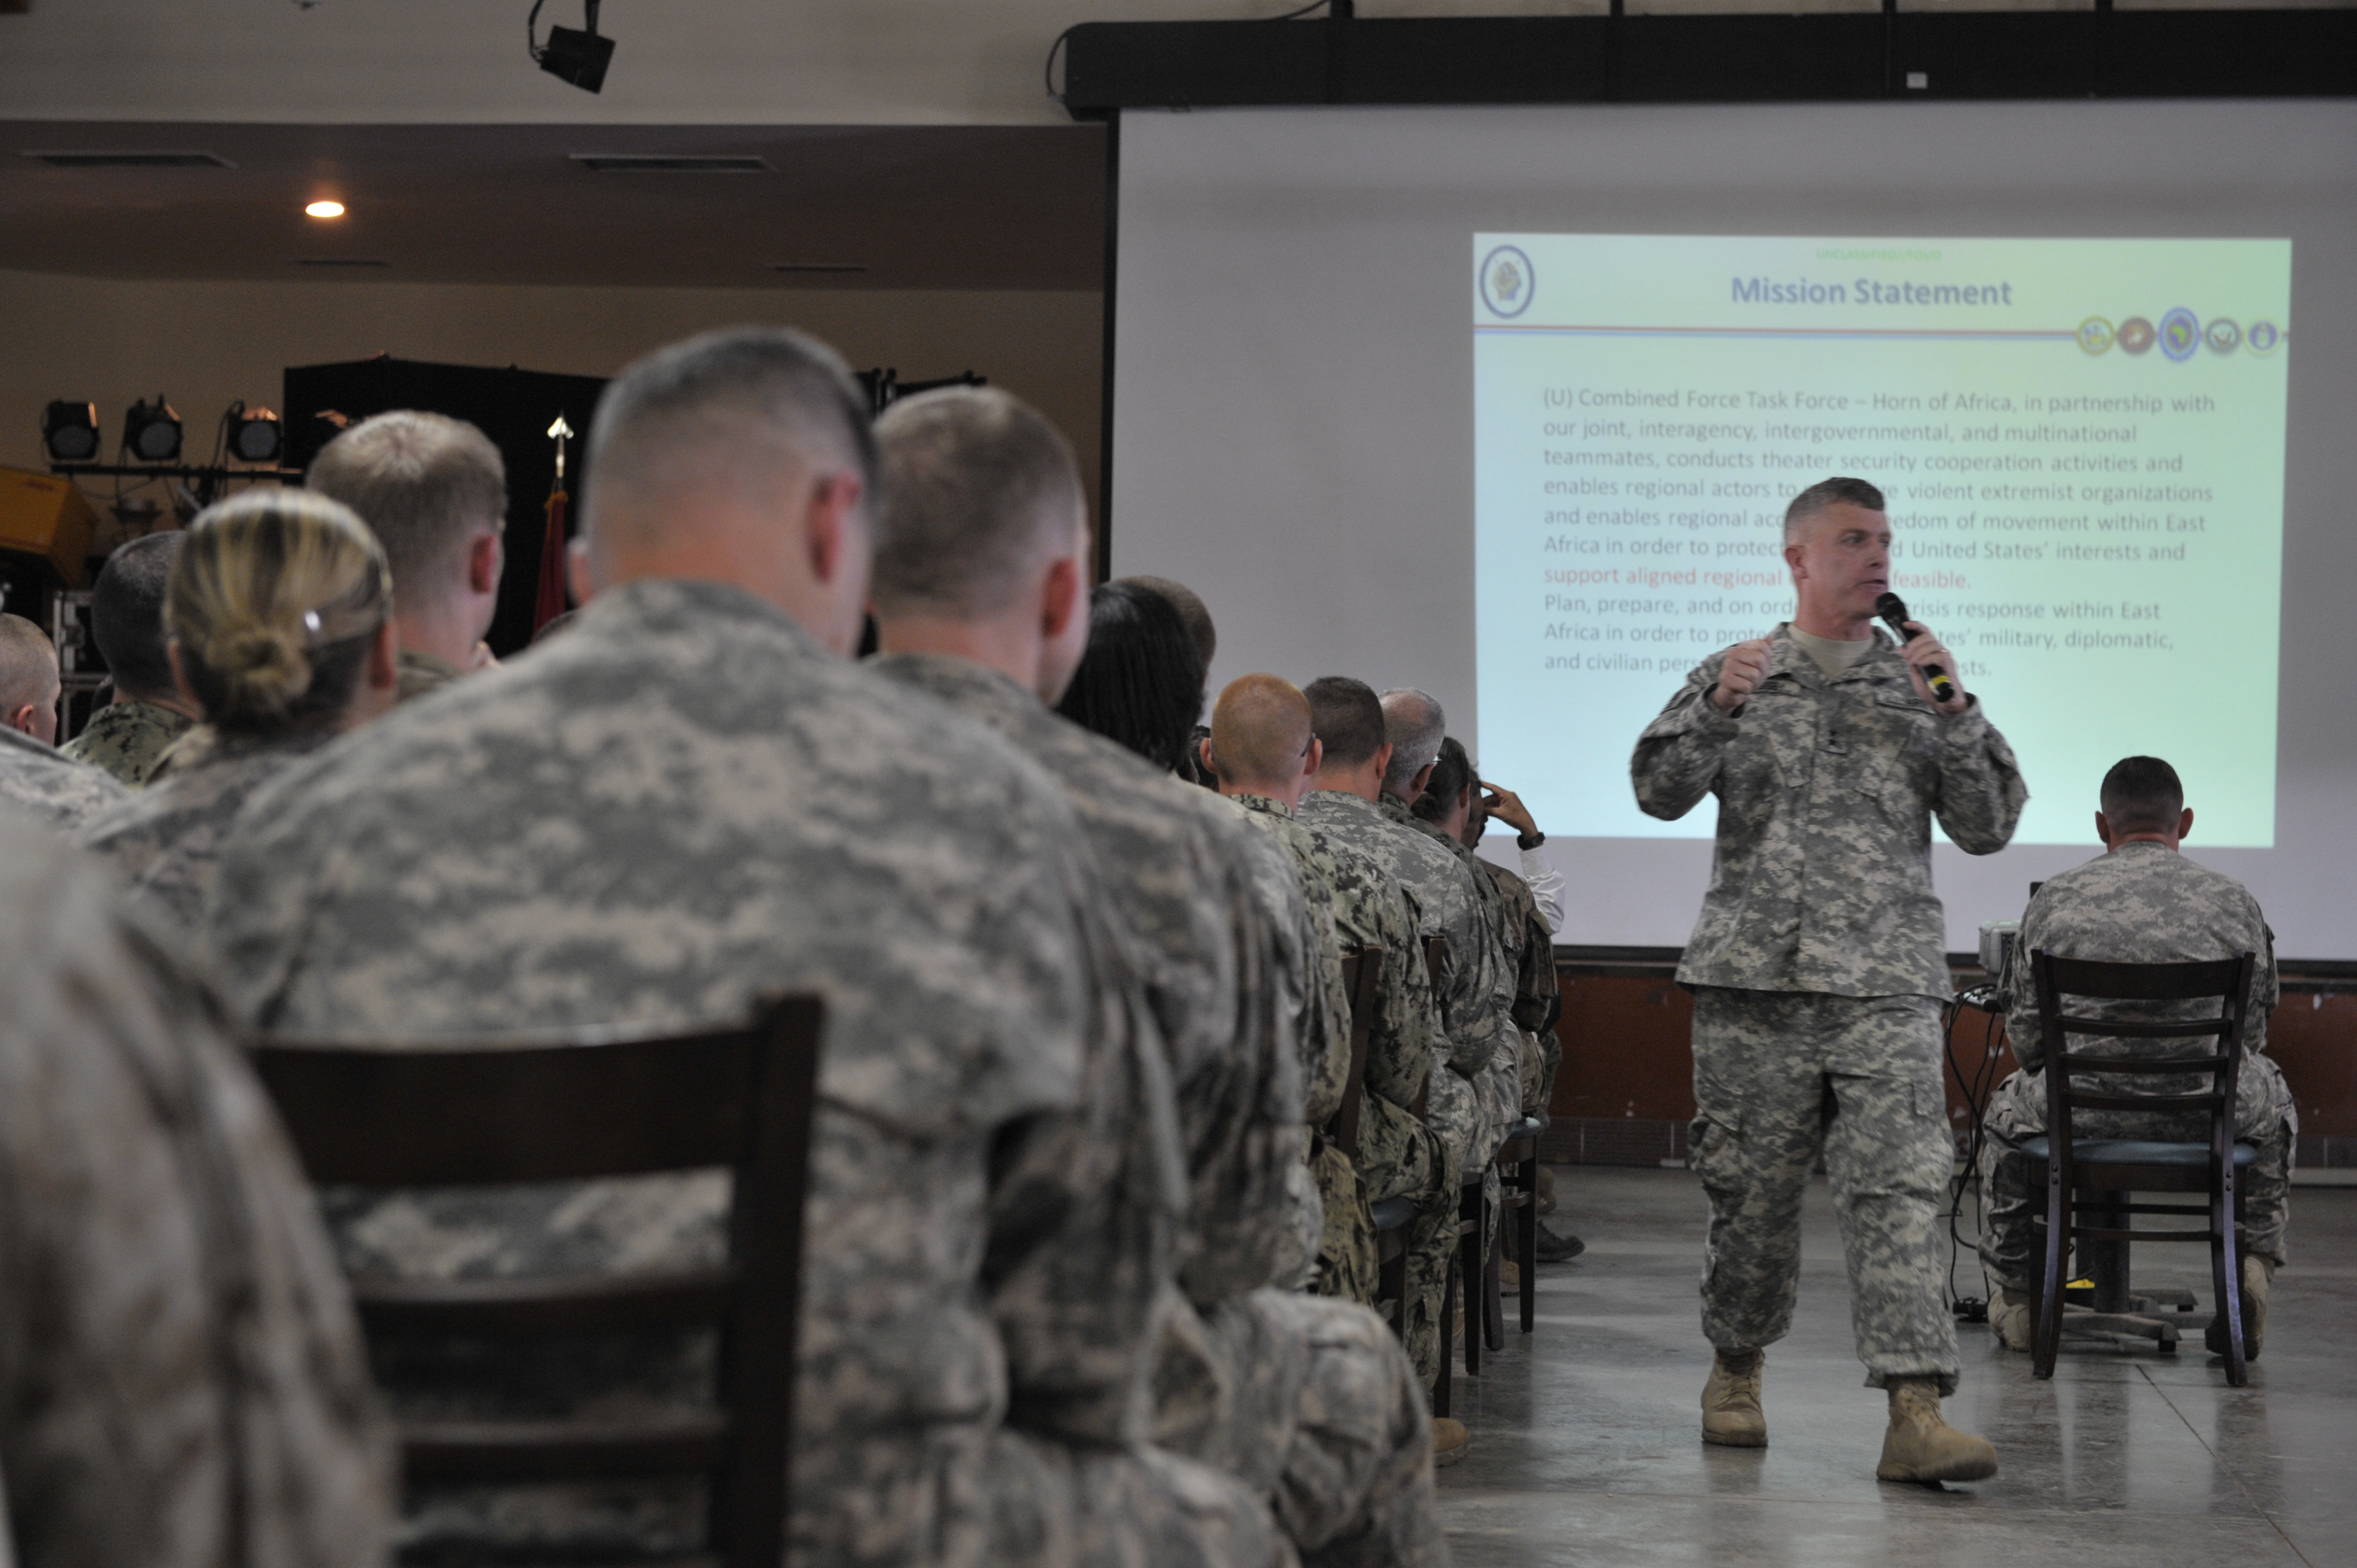 Maj. Gen. Wayne W. Grigsby, Jr., Combined Joint Task Force-Horn of Africa commanding general, speaks to service members during a CJTF-HOA All Hands Call at Camp Lemonnier, Djibouti on Nov. 7, 2015. Grigsby is set to relinquish command of CJTF-HOA on April 14, 2015, after serving 14 months as commanding general. (U.S. Air Force photo by Tech. Sgt. Ian Dean)